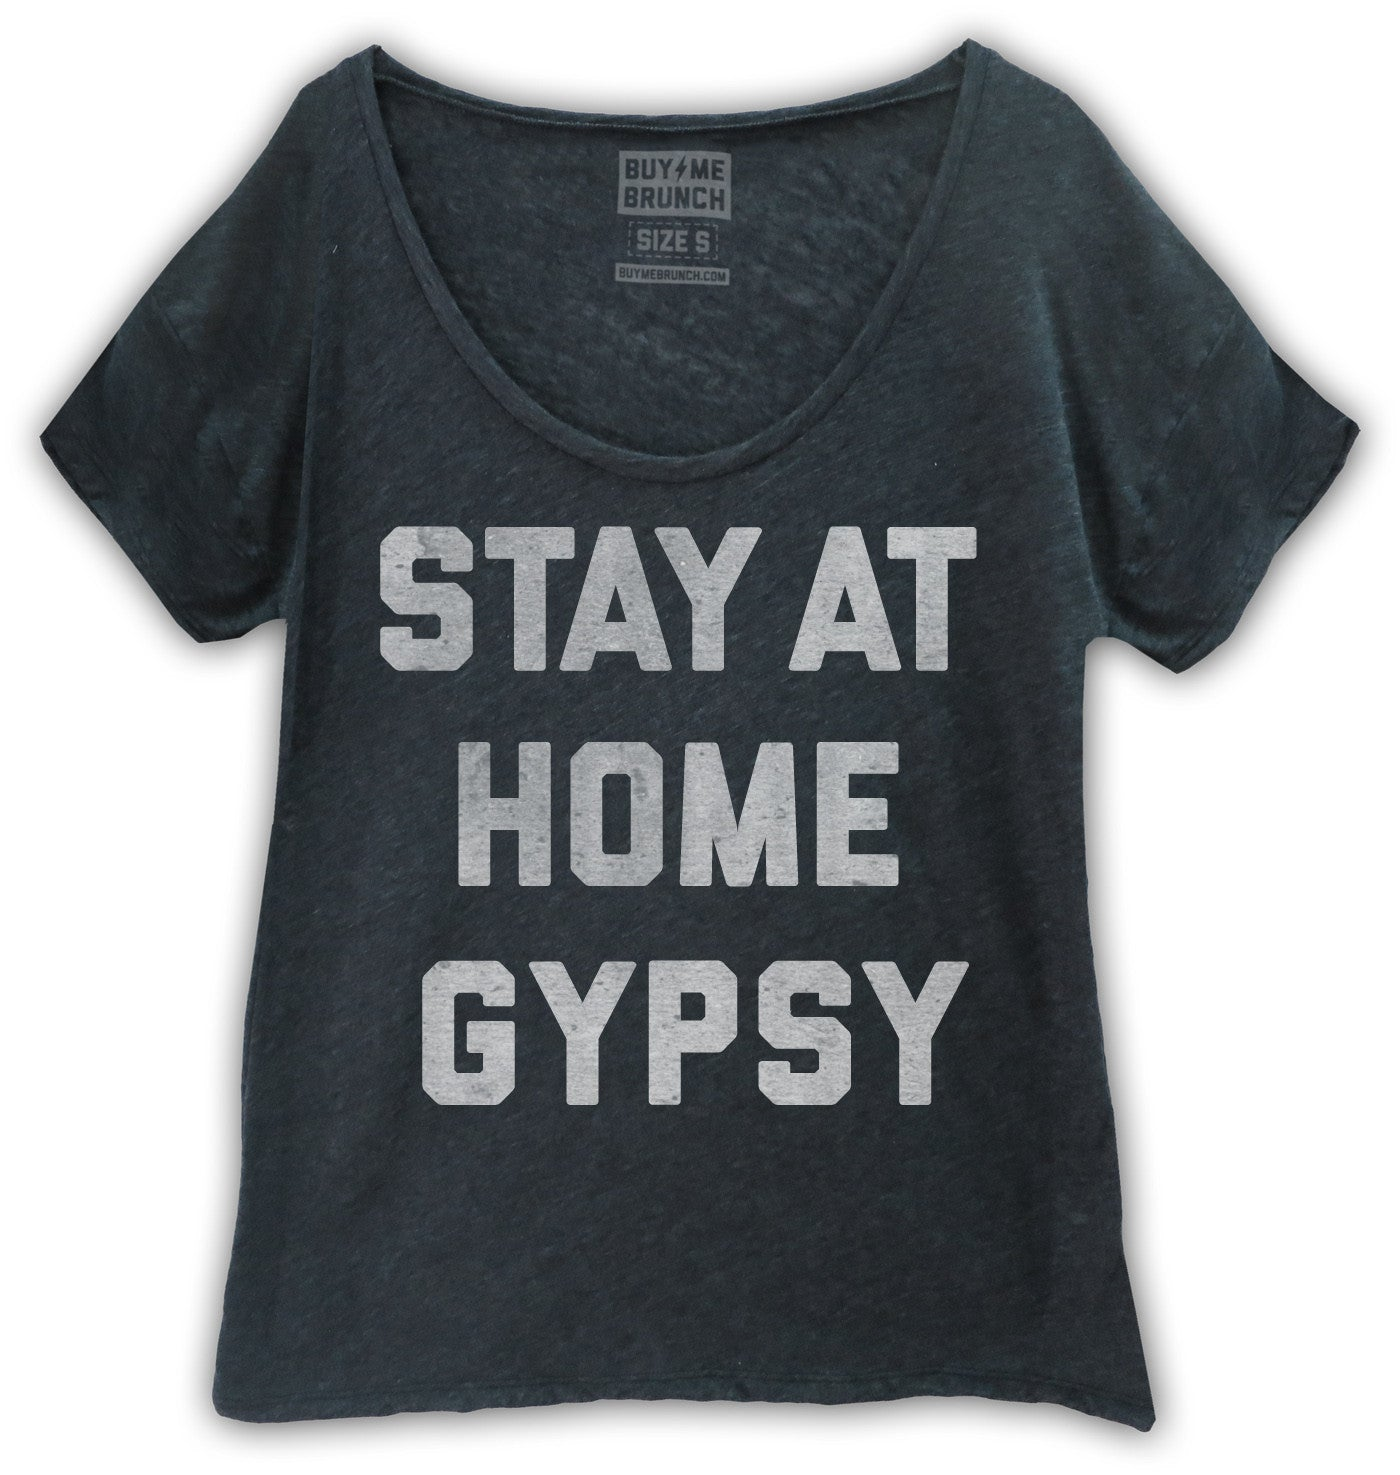 Stay at home gypsy women 39 s t shirt buy me brunch for Buy me brunch shirts